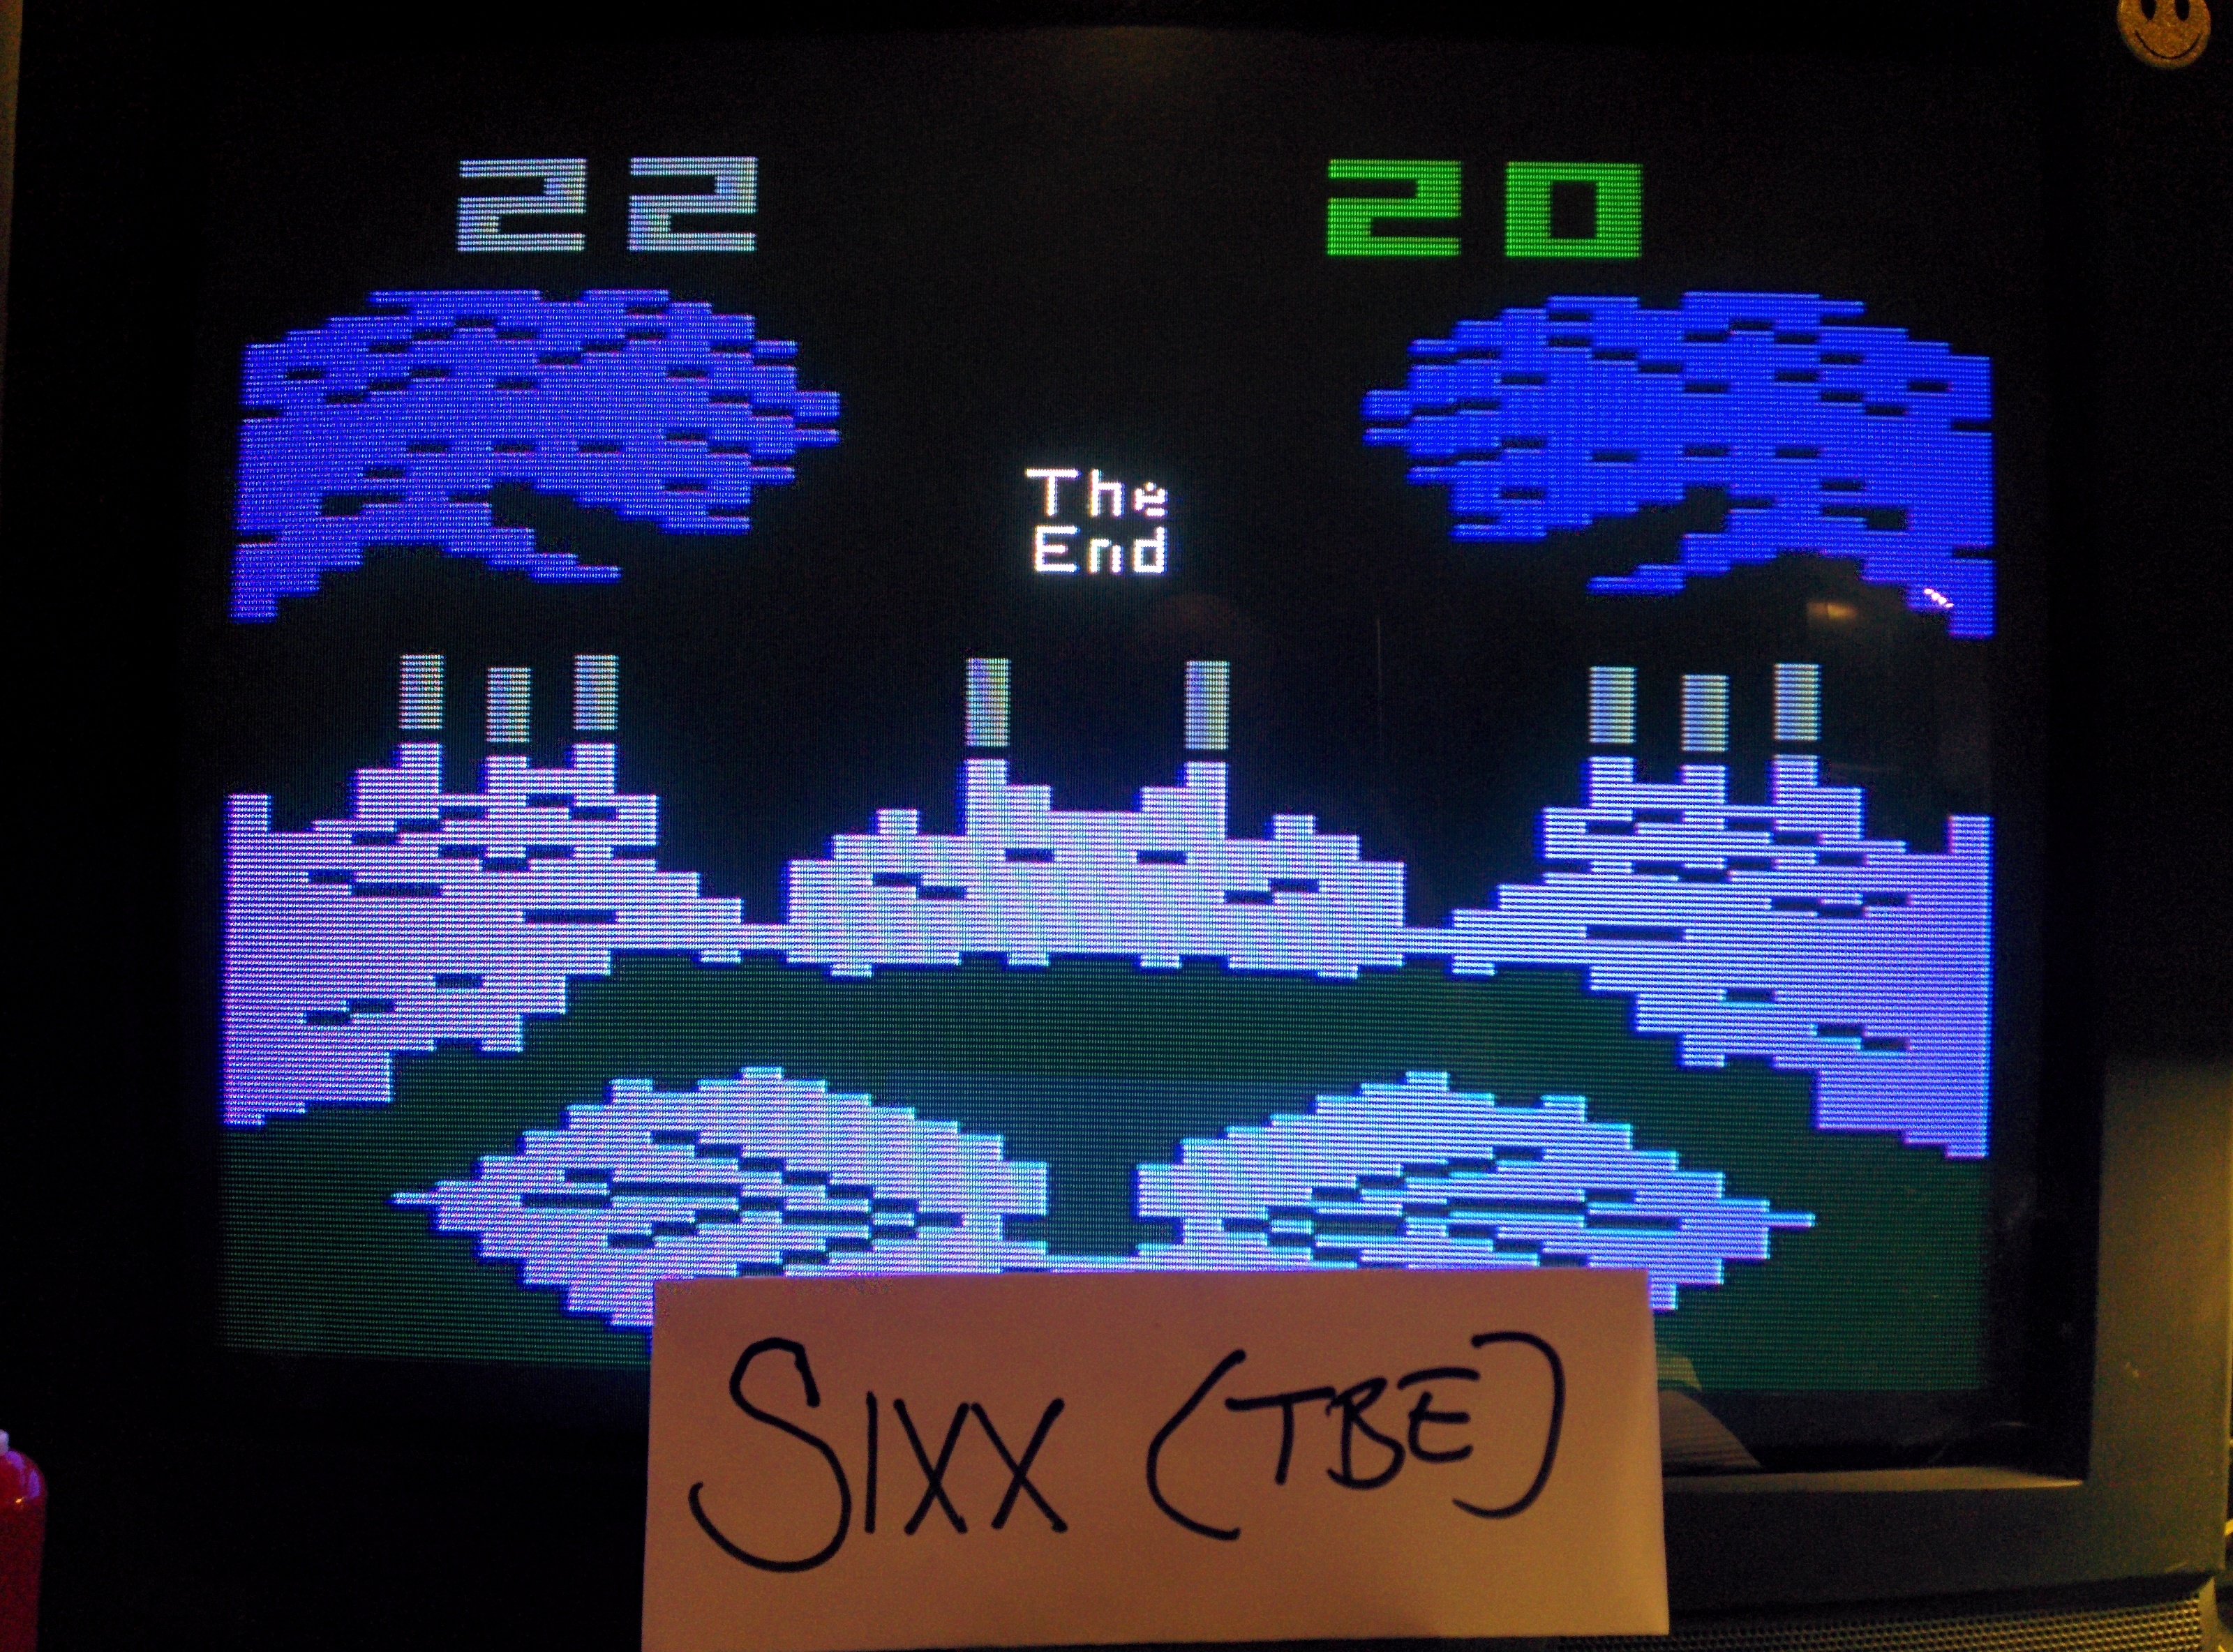 Sixx: Frogs and Flies (Atari 2600 Expert/A) 22 points on 2014-05-12 14:56:58